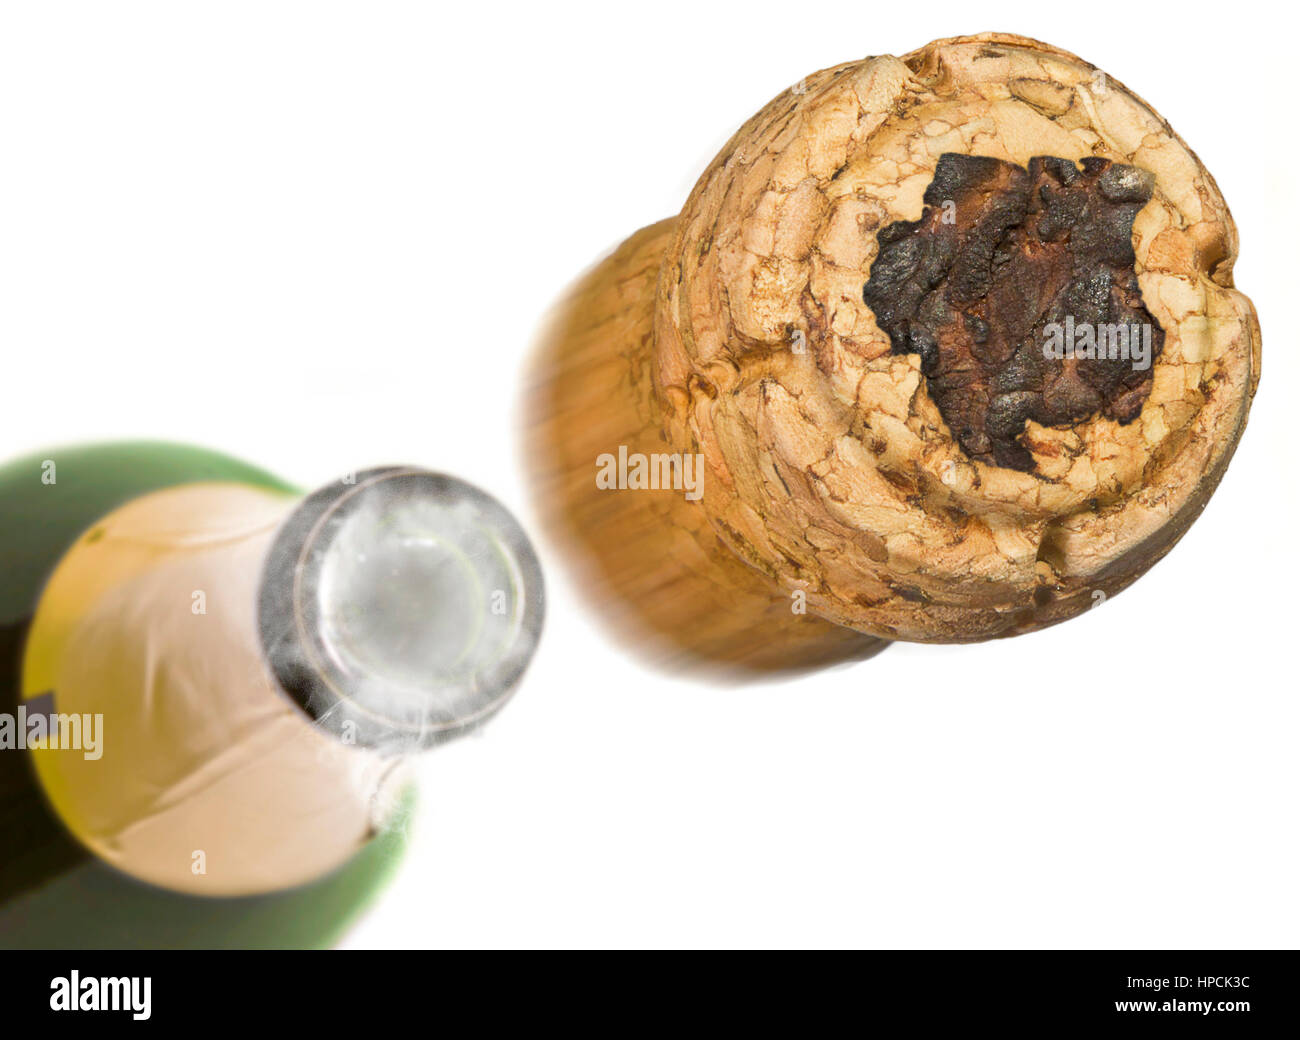 Champagne cork with the shape of Suriname burnt in and bottle of champagne in the back.(series) - Stock Image